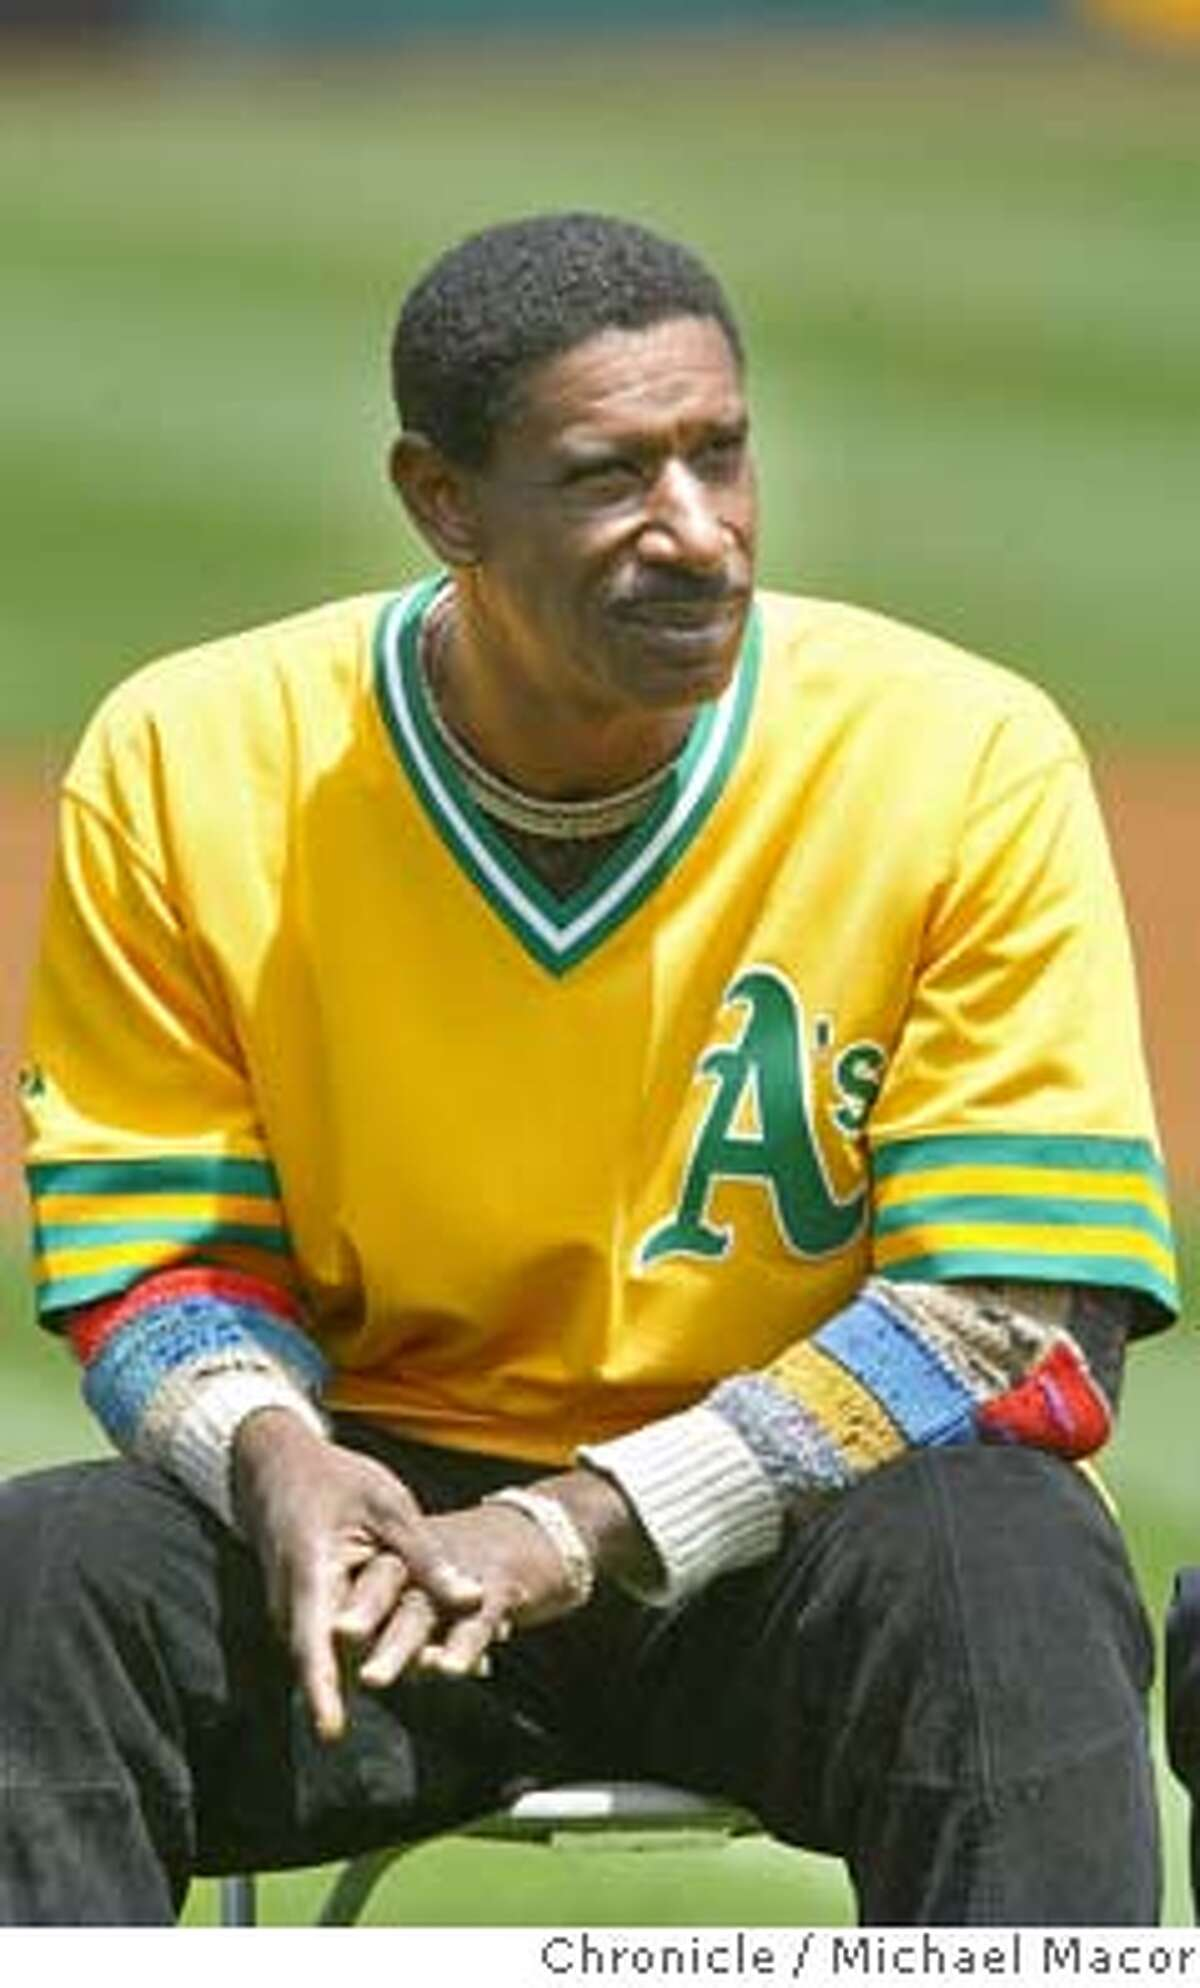 Claudell Washington on hand for the retiring of Reggie Jackson's number. The Oakland Athletics vs. Kansas City Royals. event on 5/22/04 in Oakland Michael Macor / San Francisco Chronicle